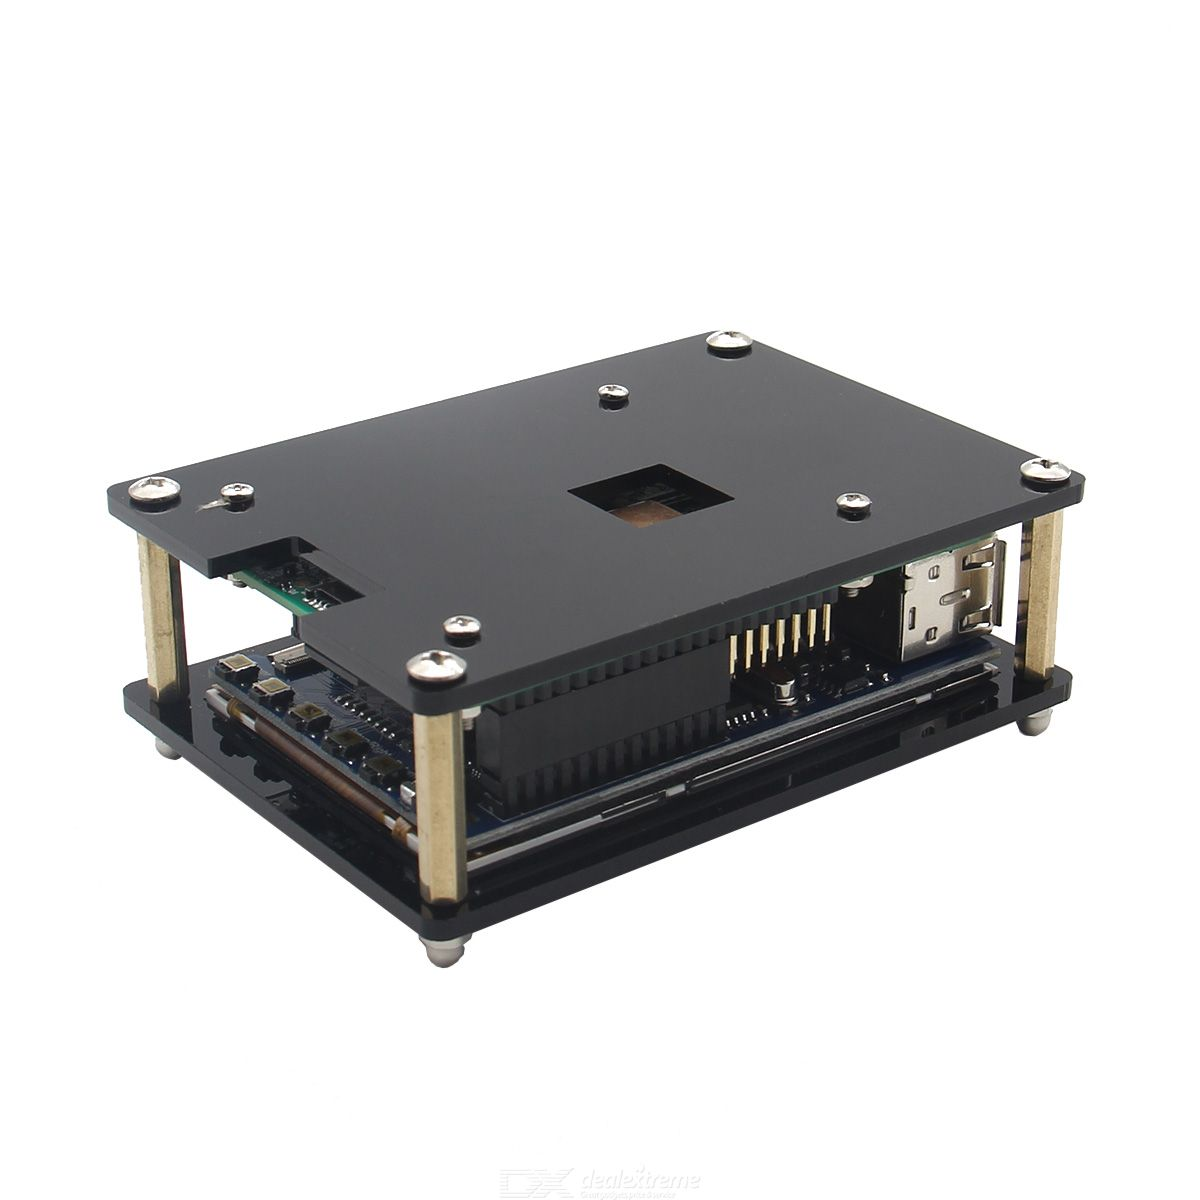 Geekworm Acrylic Case with 3.5quot HDMI Touch Screen Set for Raspberry Pi